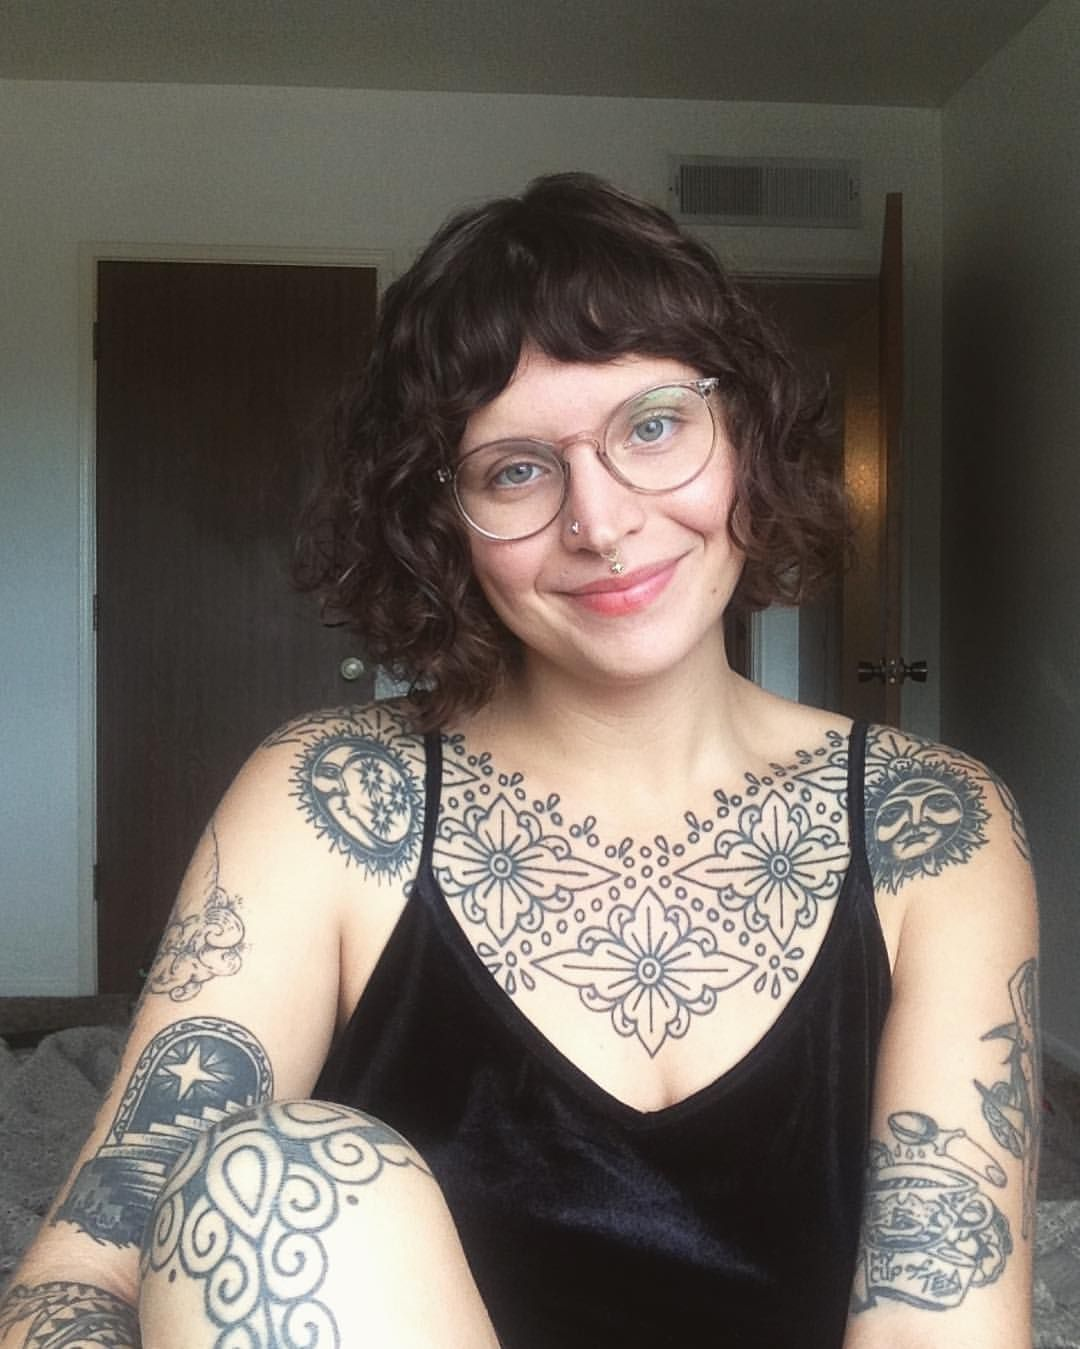 IAN LUTZ (With images) Full chest tattoos, Tattoed girls